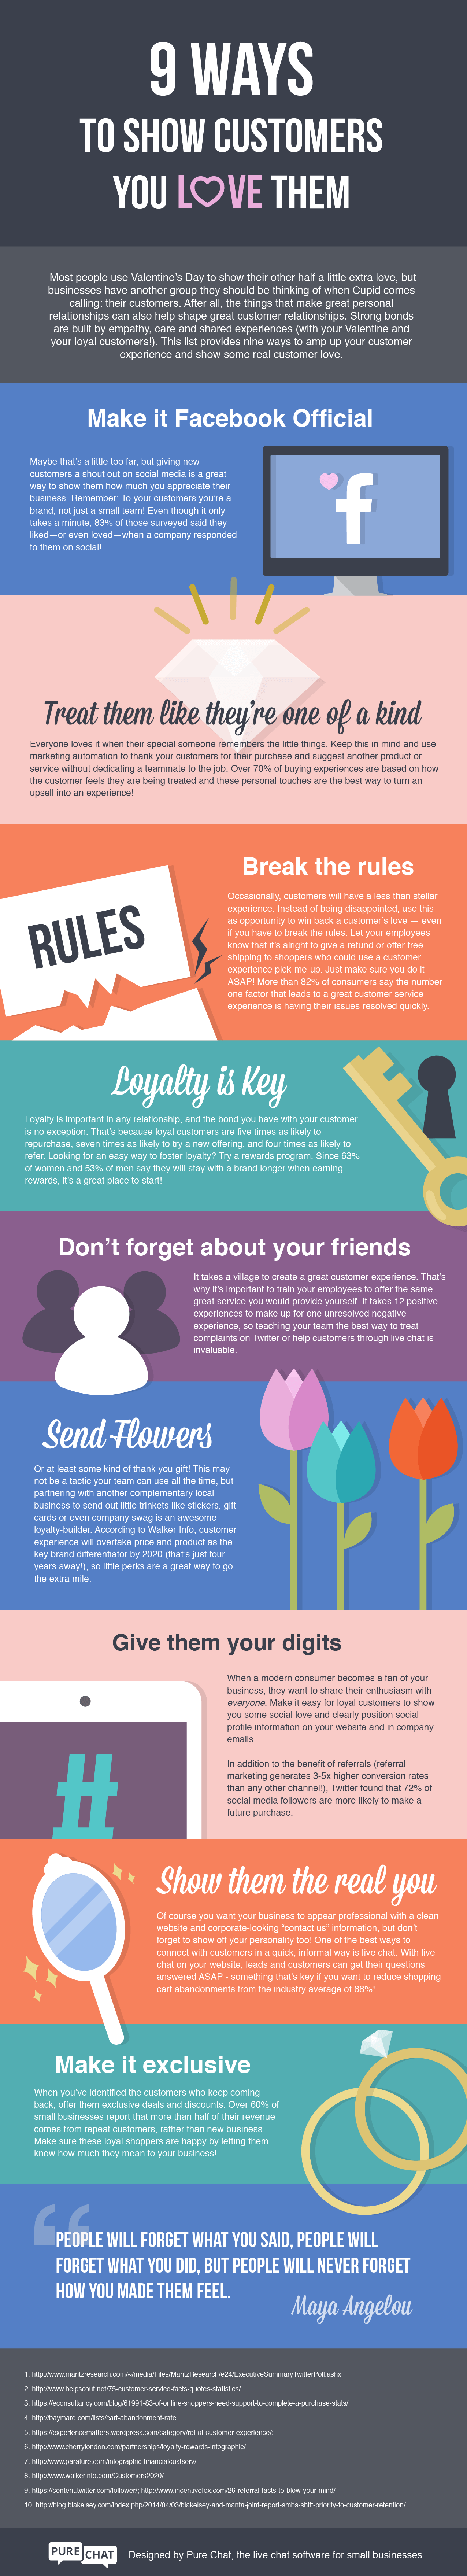 9 Ways to Show Customers Love Infographic